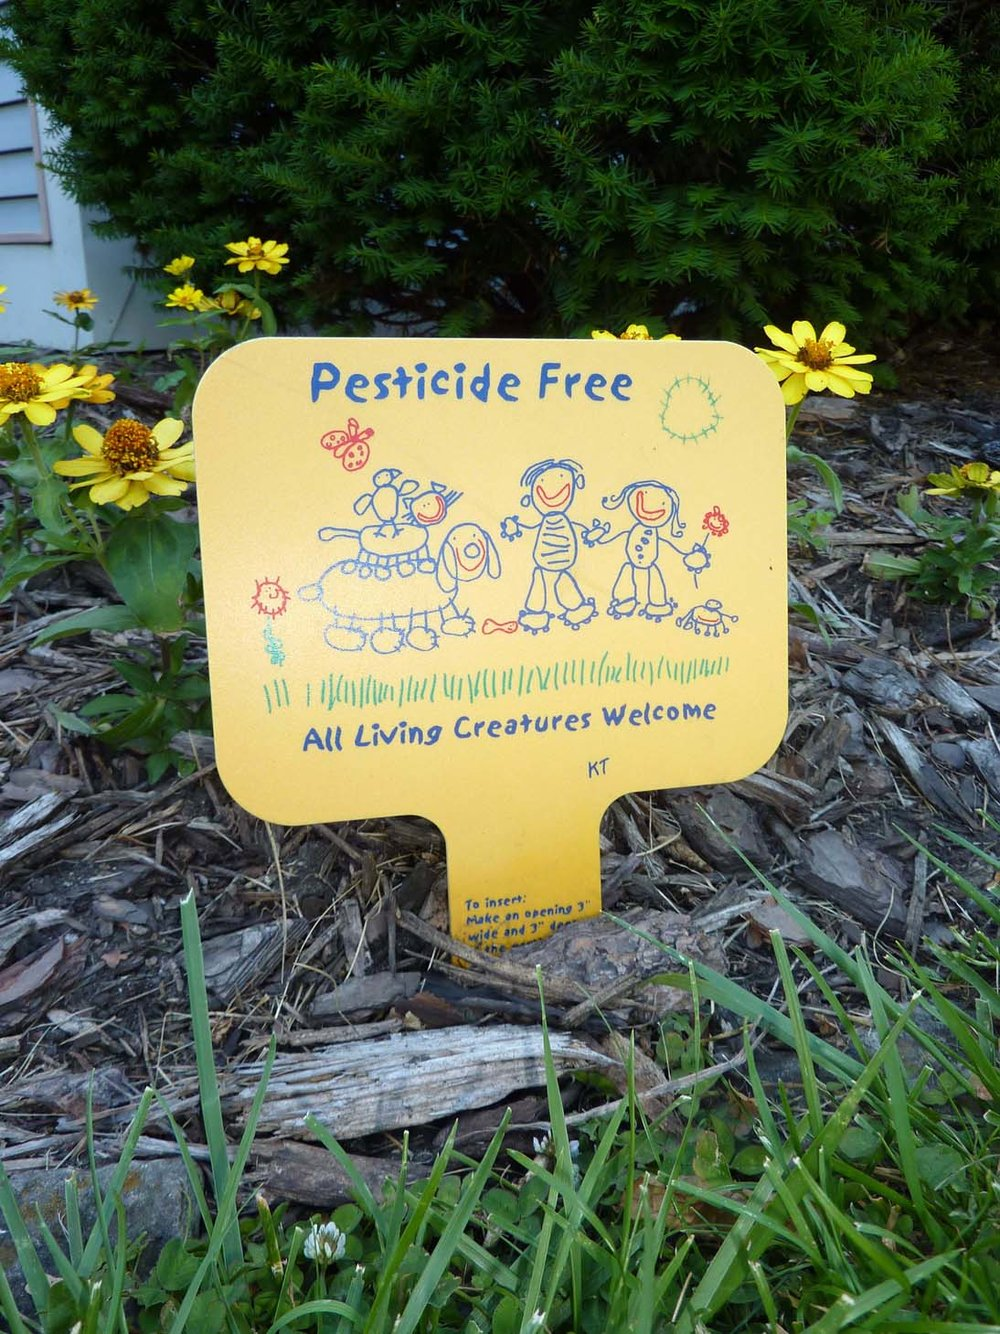 For Oak Park: https://www.oak-park.us/newsletters/september-2015/pesticide-free-lawn-signs-available